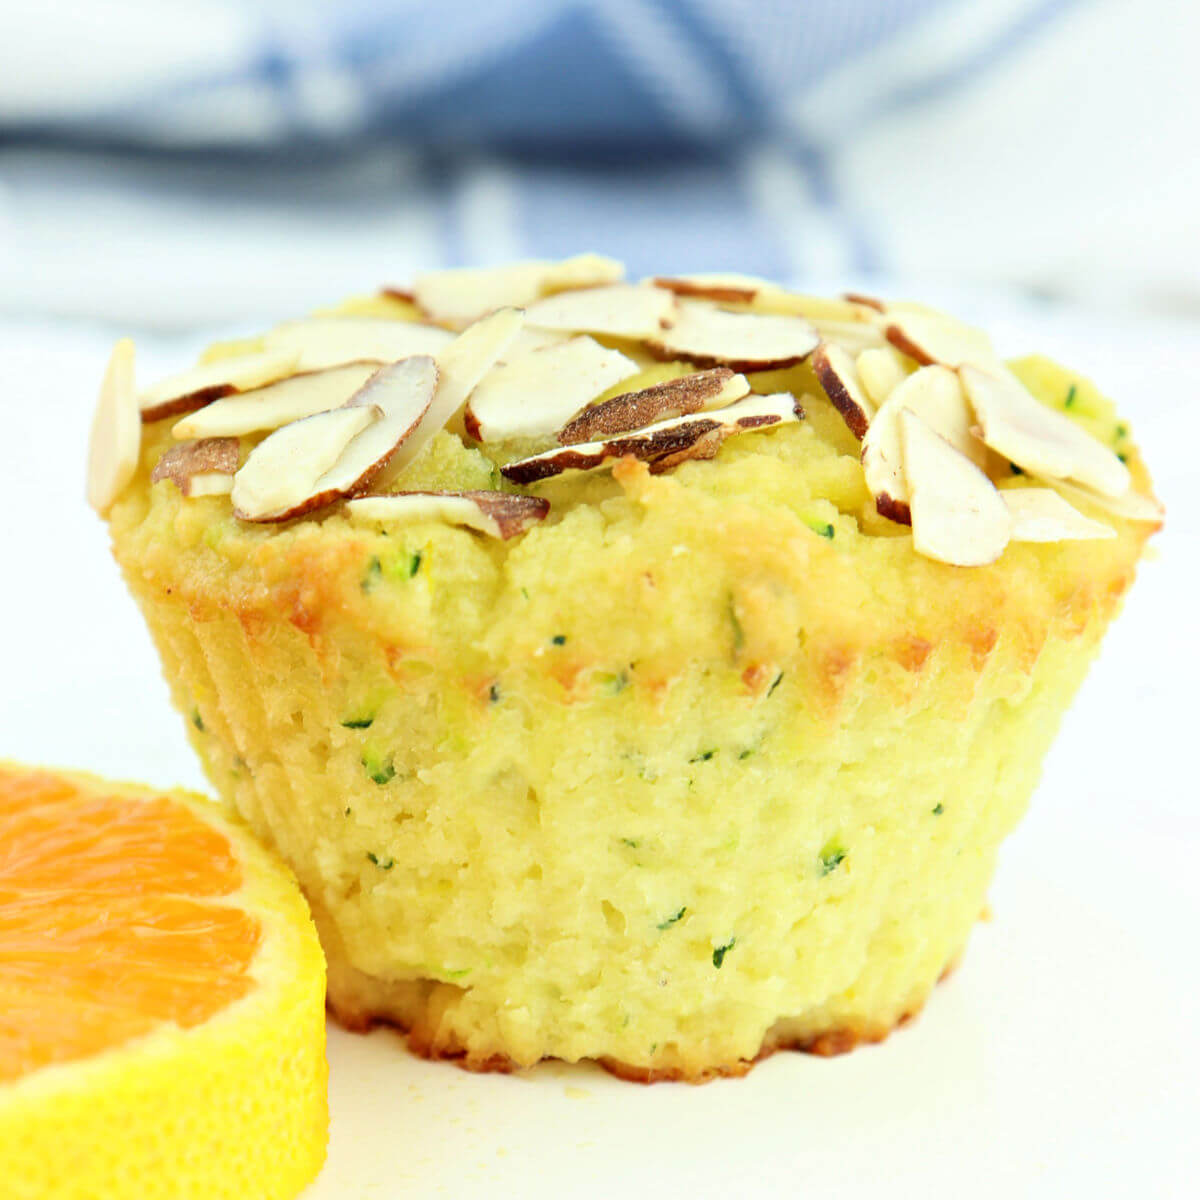 Orange almond keto zucchini muffin